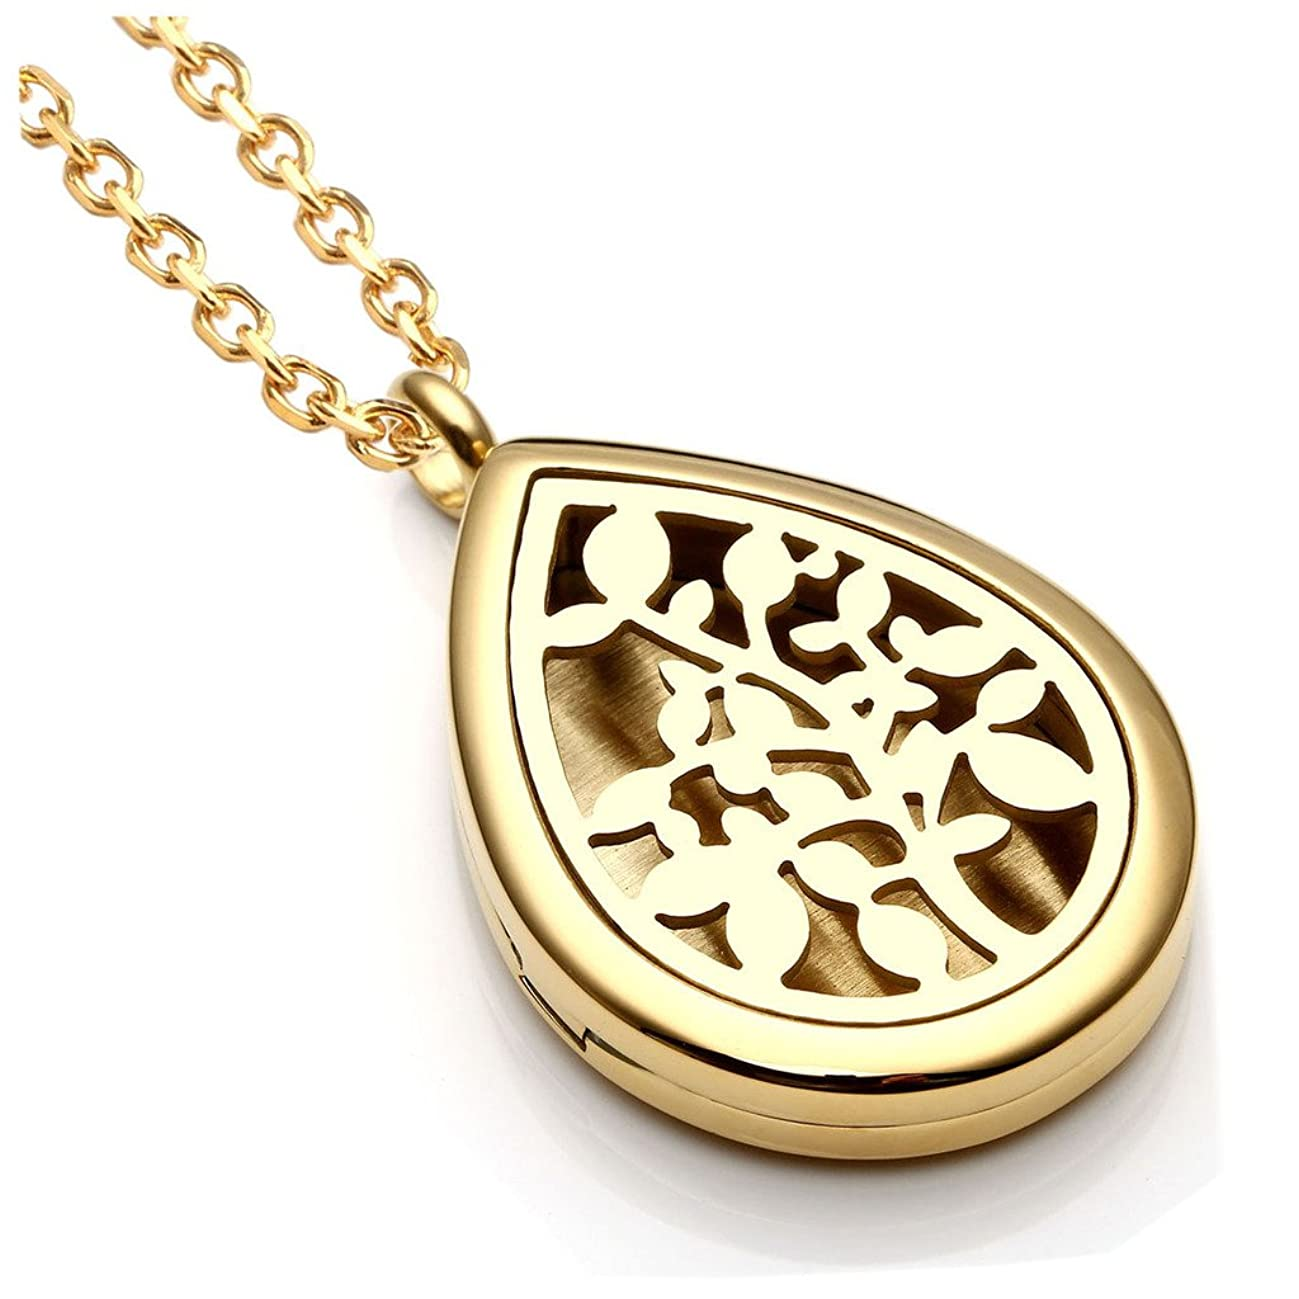 Jovivi 30mm Stainless Steel Silver/Rose Gold Round Water Teardrop Aromatherapy Essential Oil Diffuser Locket Necklace